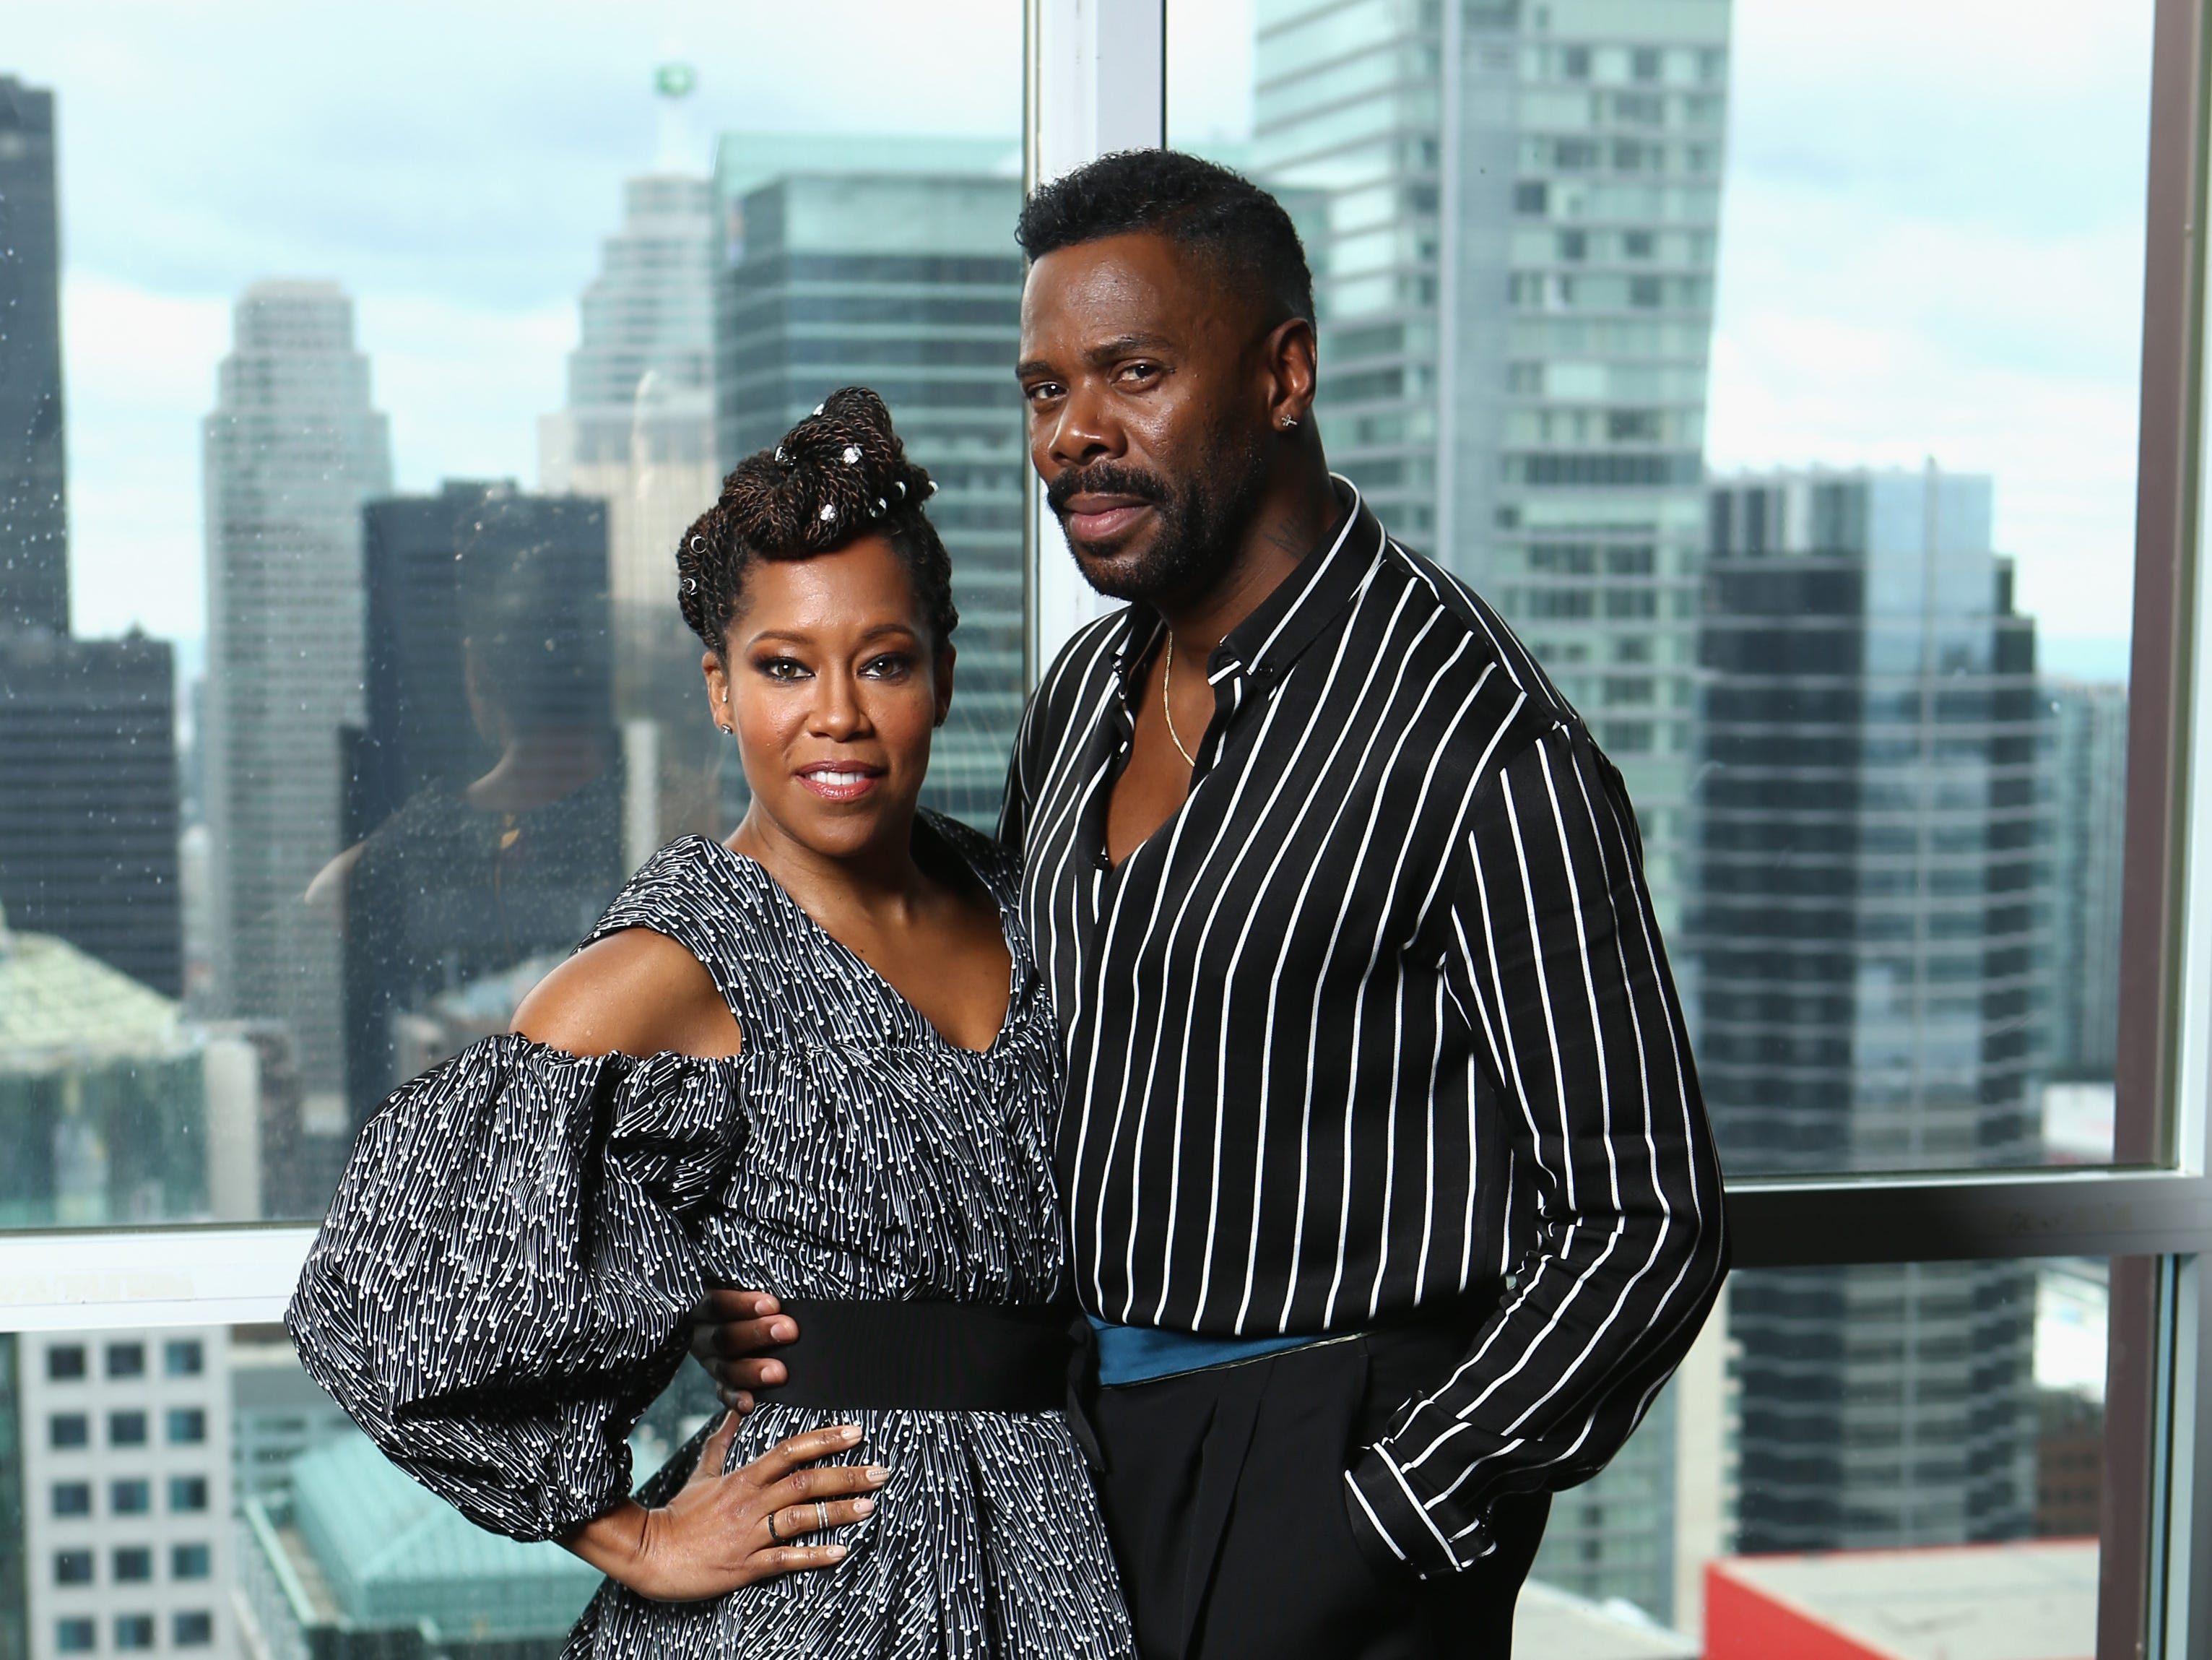 "TORONTO, ON - SEPTEMBER 09: Regina King (L) and Colman Domingo of ""If Beale Street Could Talk"" attend The IMDb Studio presented By Land Rover At The 2018 Toronto International Film Festival at Bisha Hotel & Residences on September 9, 2018 in Toronto, Canada.  (Photo by Rich Polk/Getty Images for IMDb) ORG XMIT: 775215199 ORIG FILE ID: 1029881888"